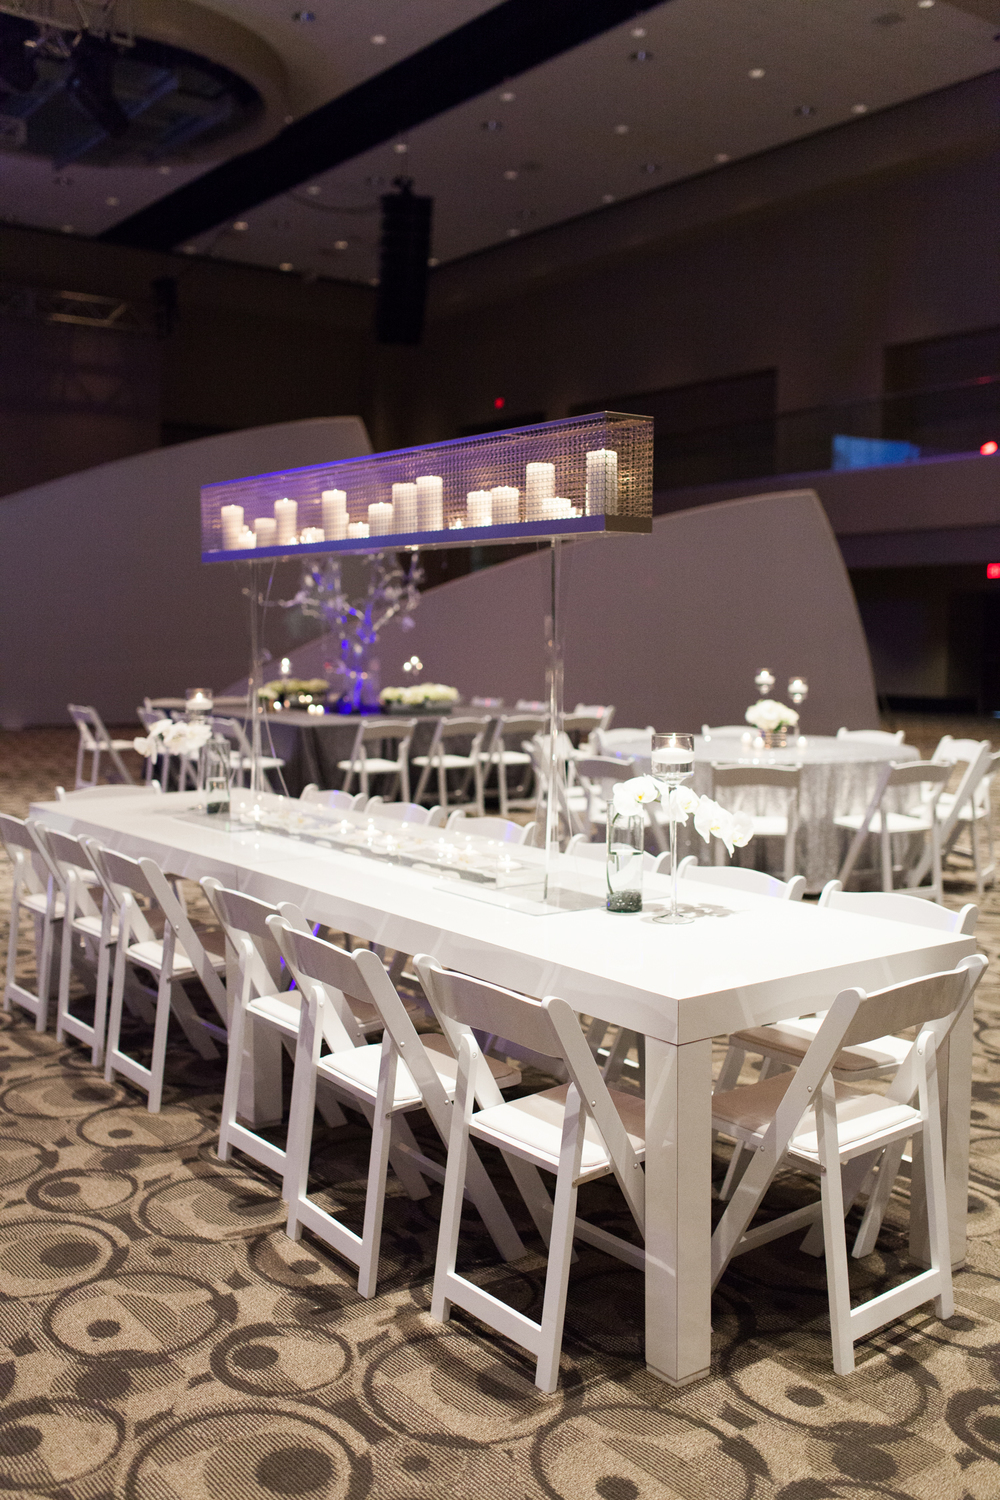 Downtown Grand Rapids, Michigan Event with White Tables